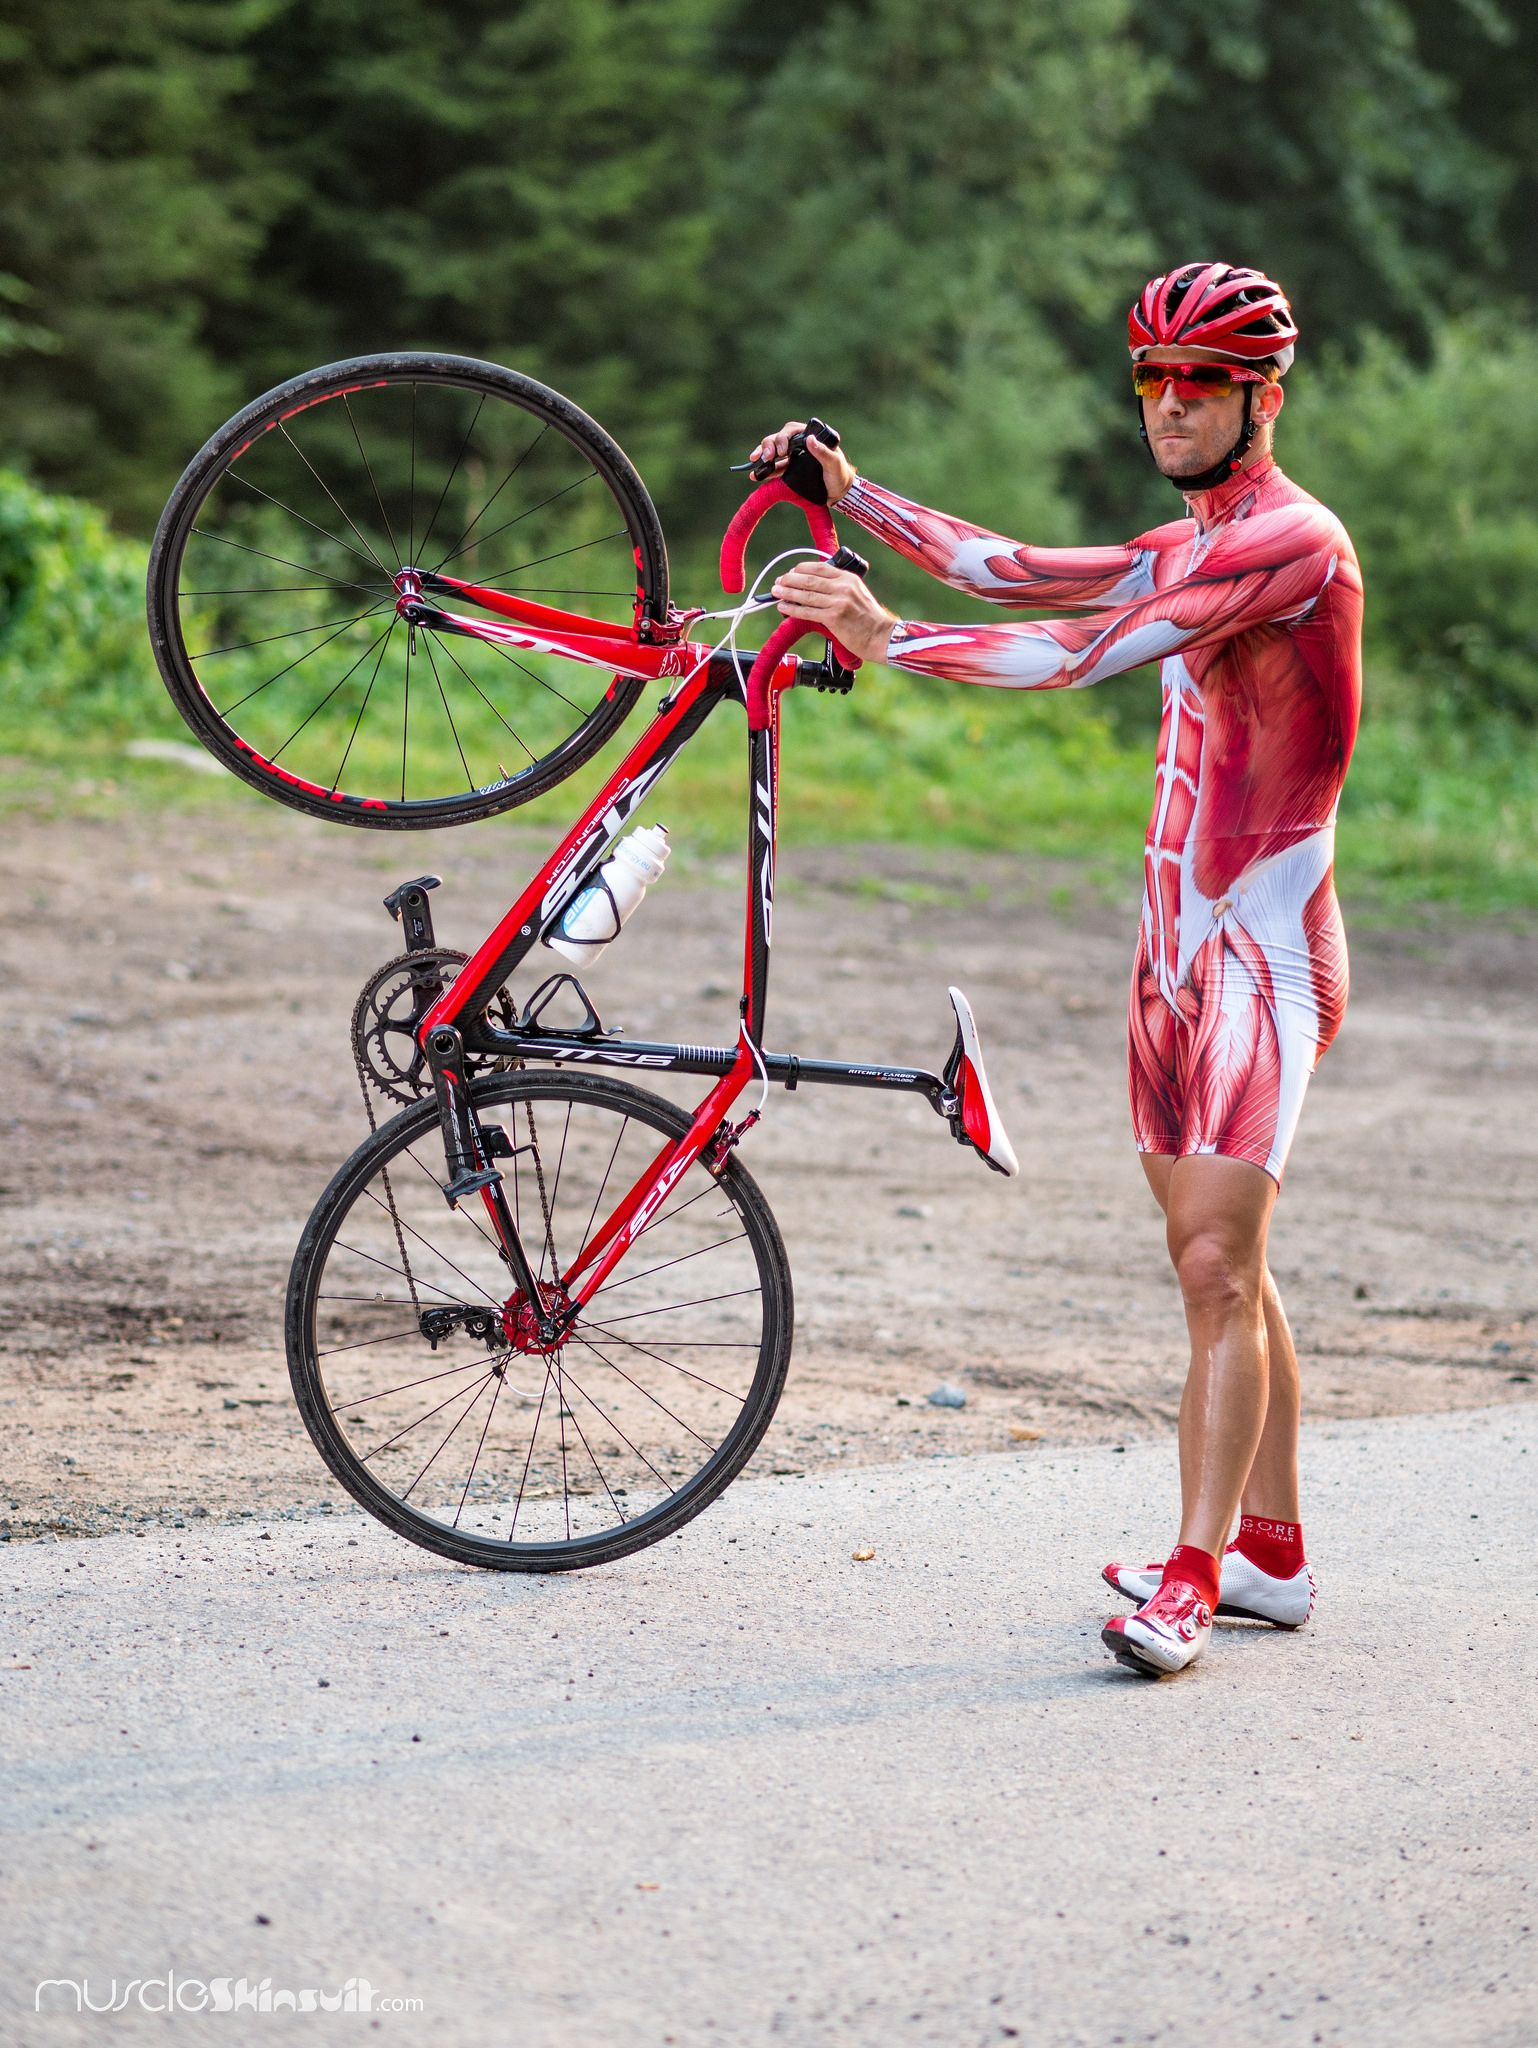 custom cycling suit | Anatomy | Pinterest | Cycling suit, Cycling ...